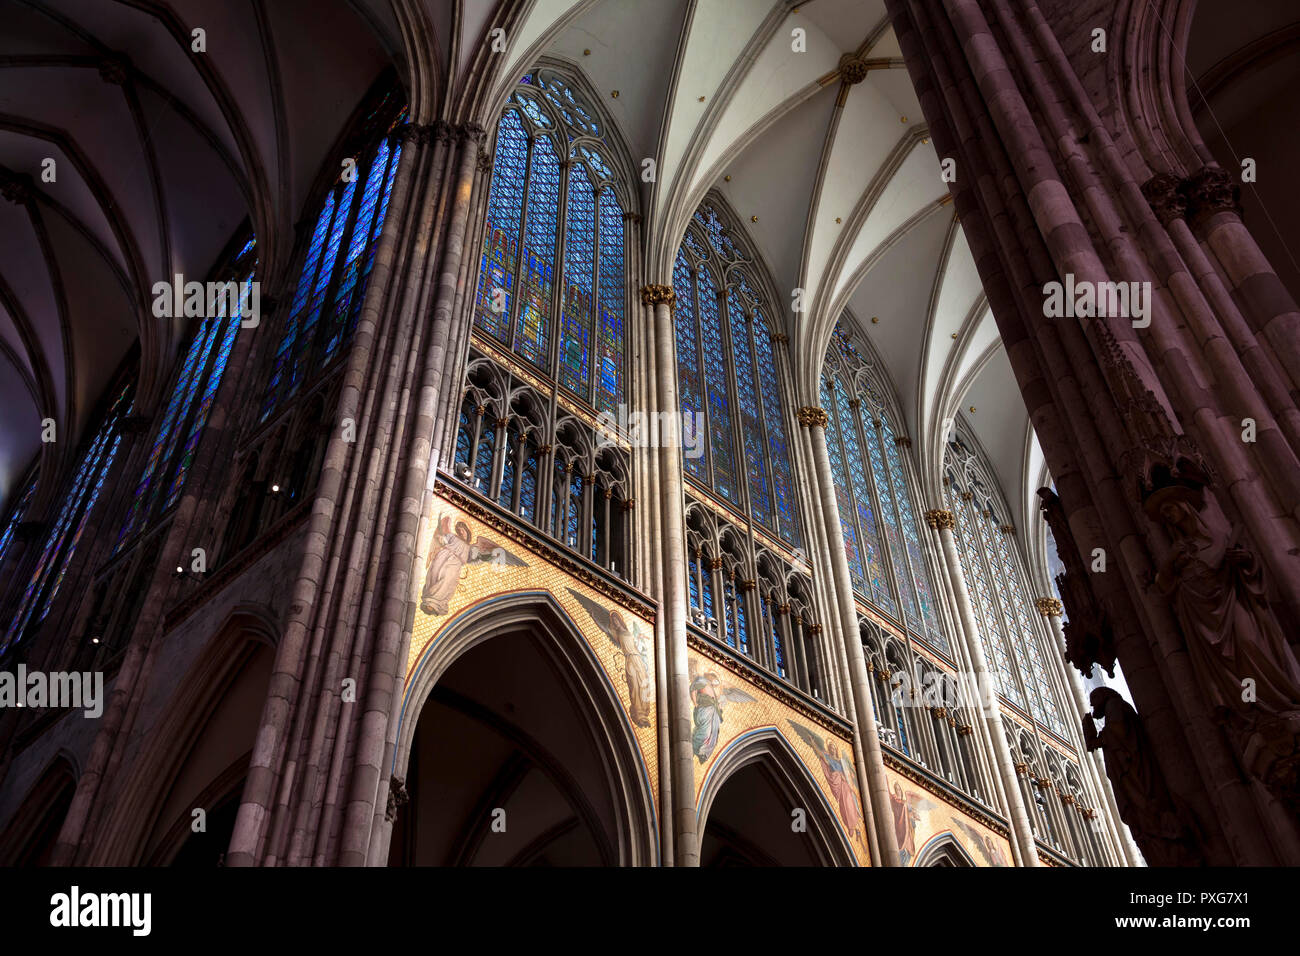 windows of the Choir of the cathedral, Cologne, Germany.  Fenster im Chor des Doms, Koeln, Deutschland. - Stock Image